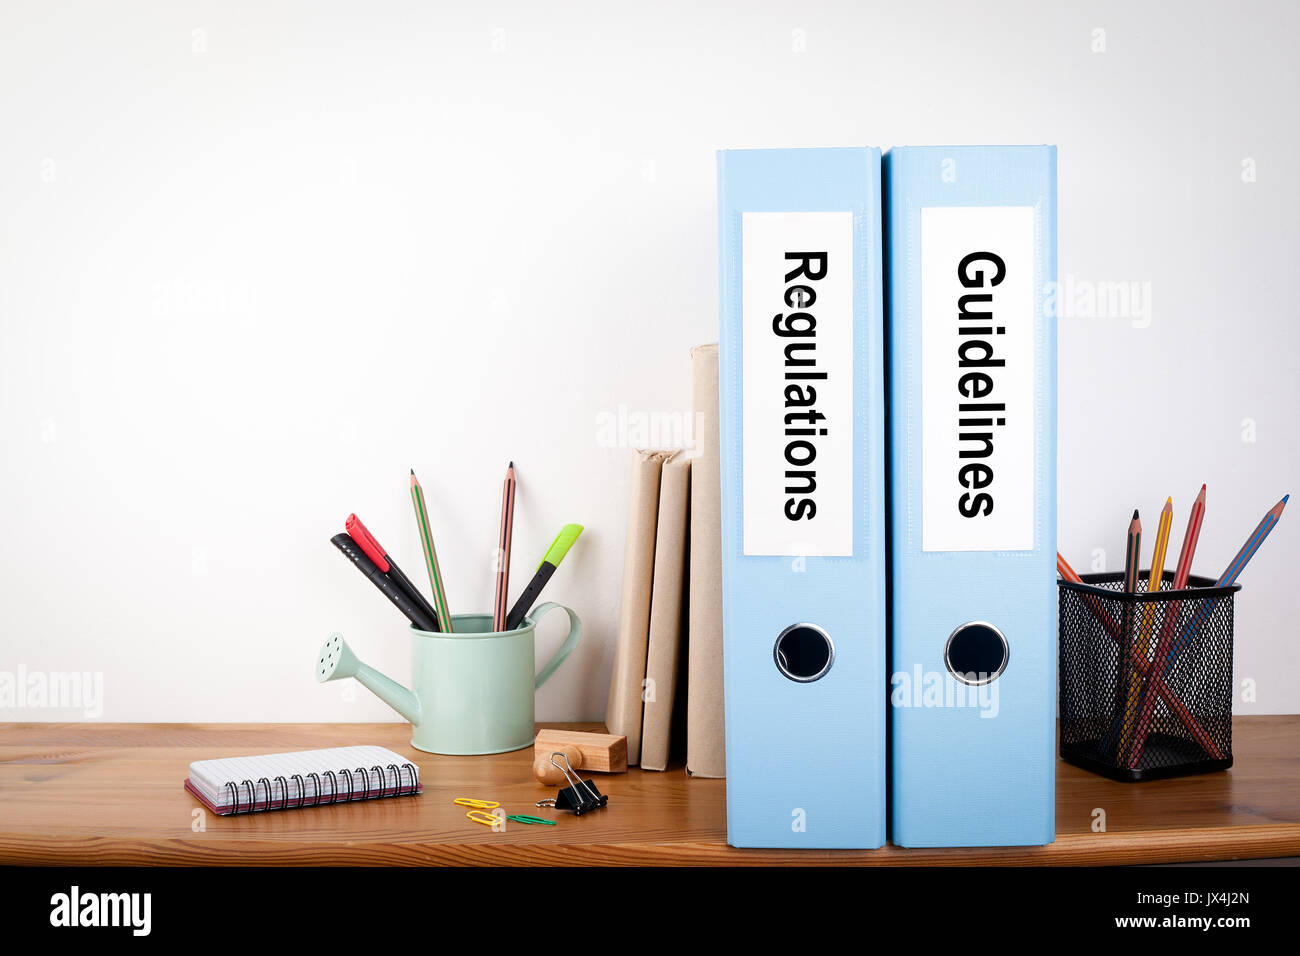 Regulations and Guidelines binders in the office. Stationery on a wooden shelf. - Stock Image